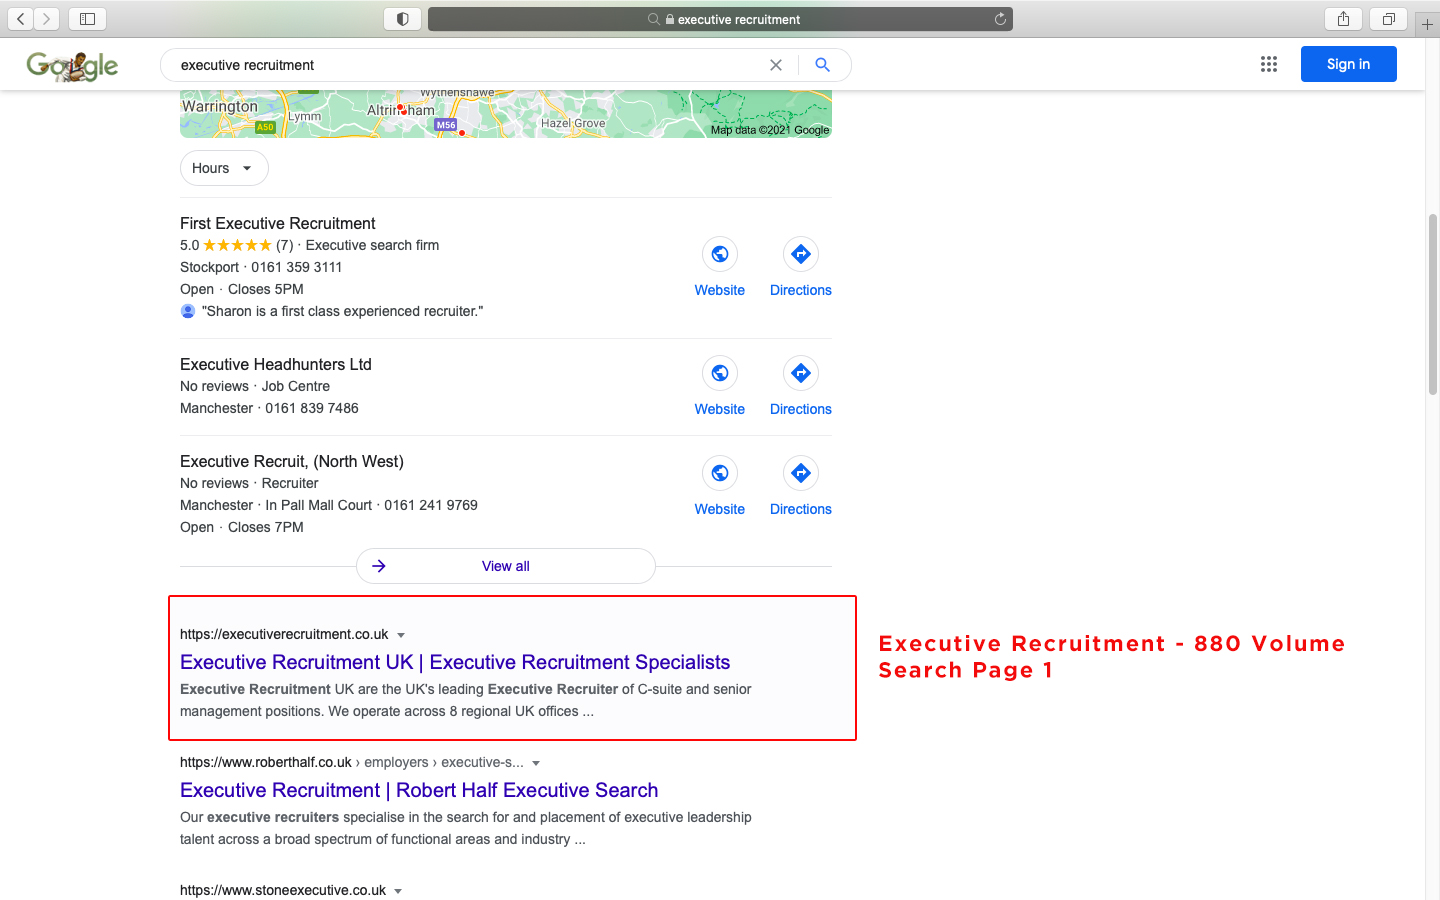 Executive Recruitment 1000 Volume Search Page 1